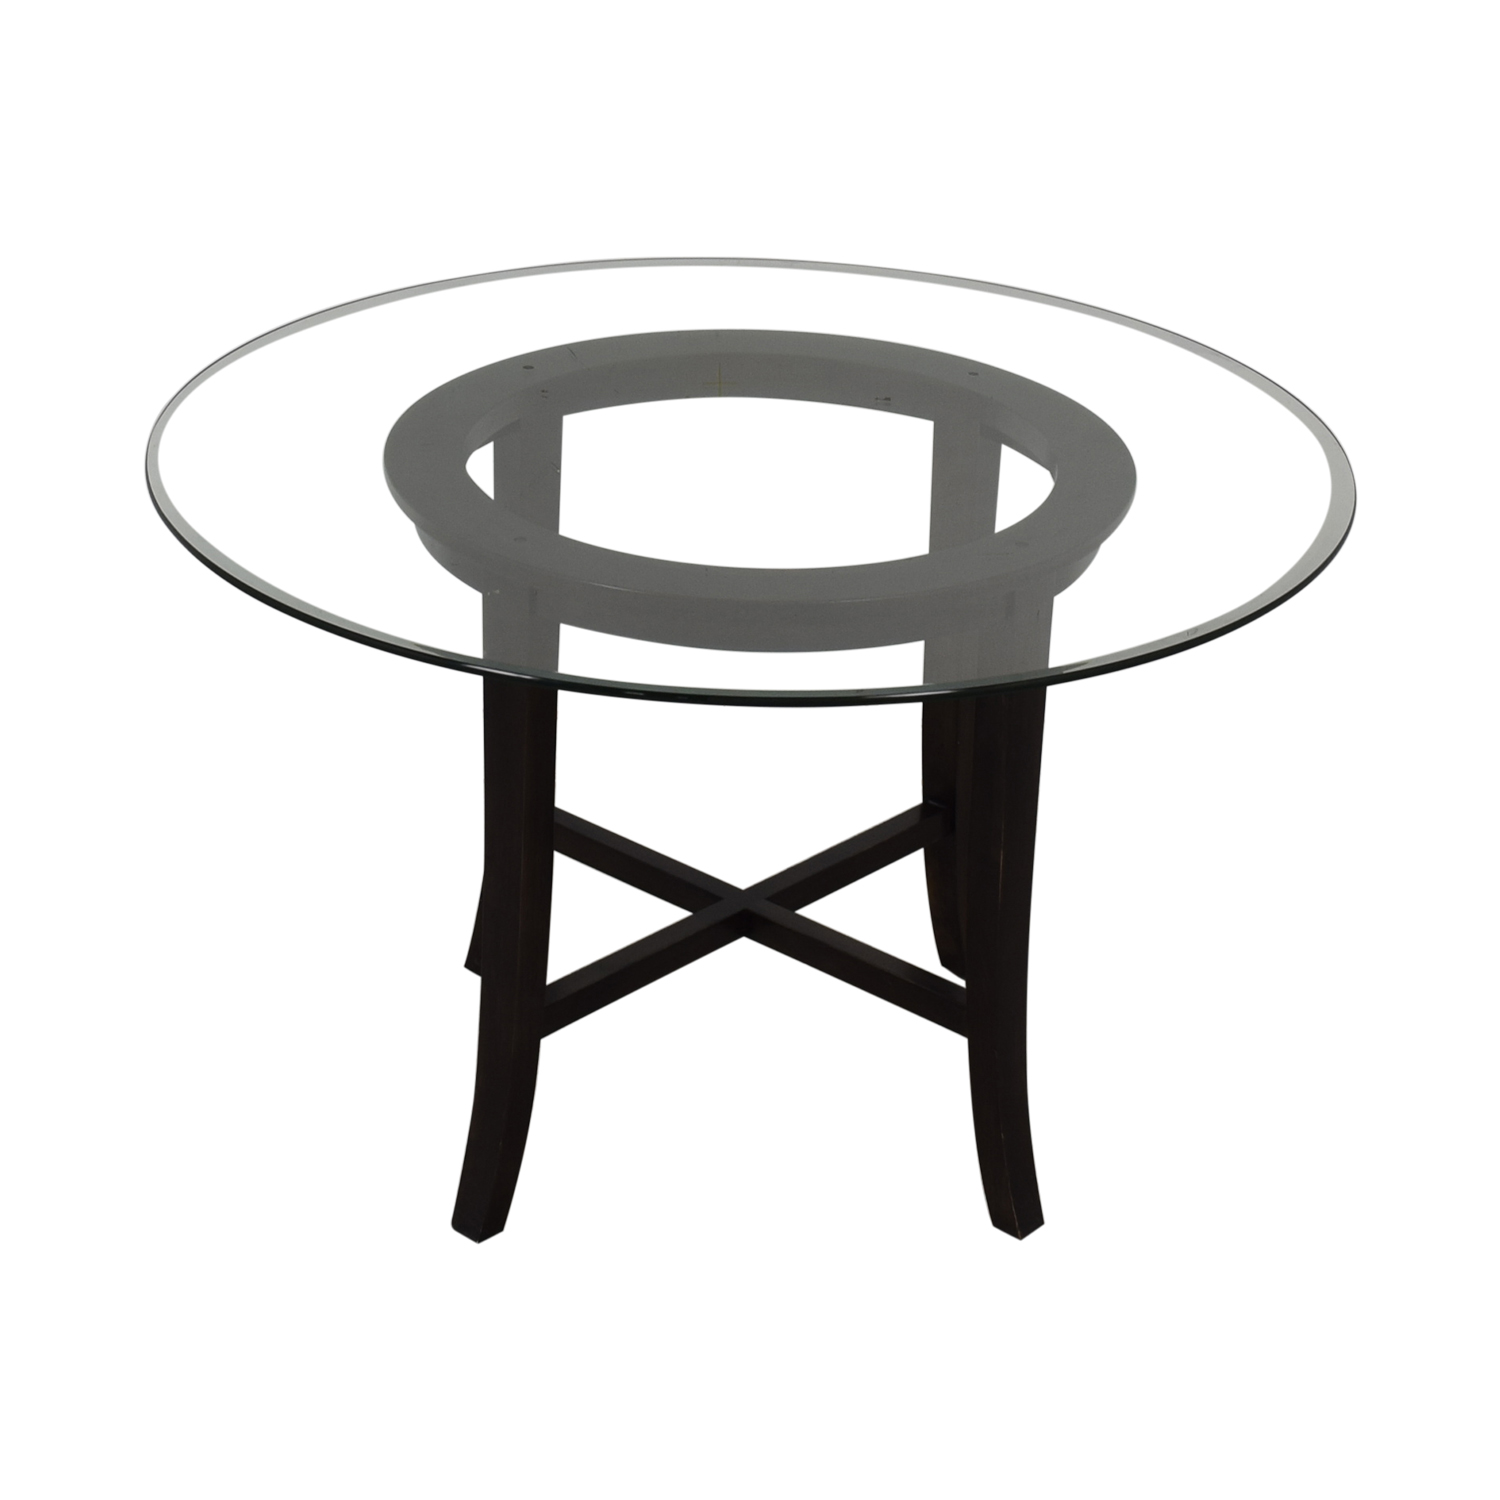 shop Crate & Barrel Halo Round Glass Dining Table Crate & Barrel